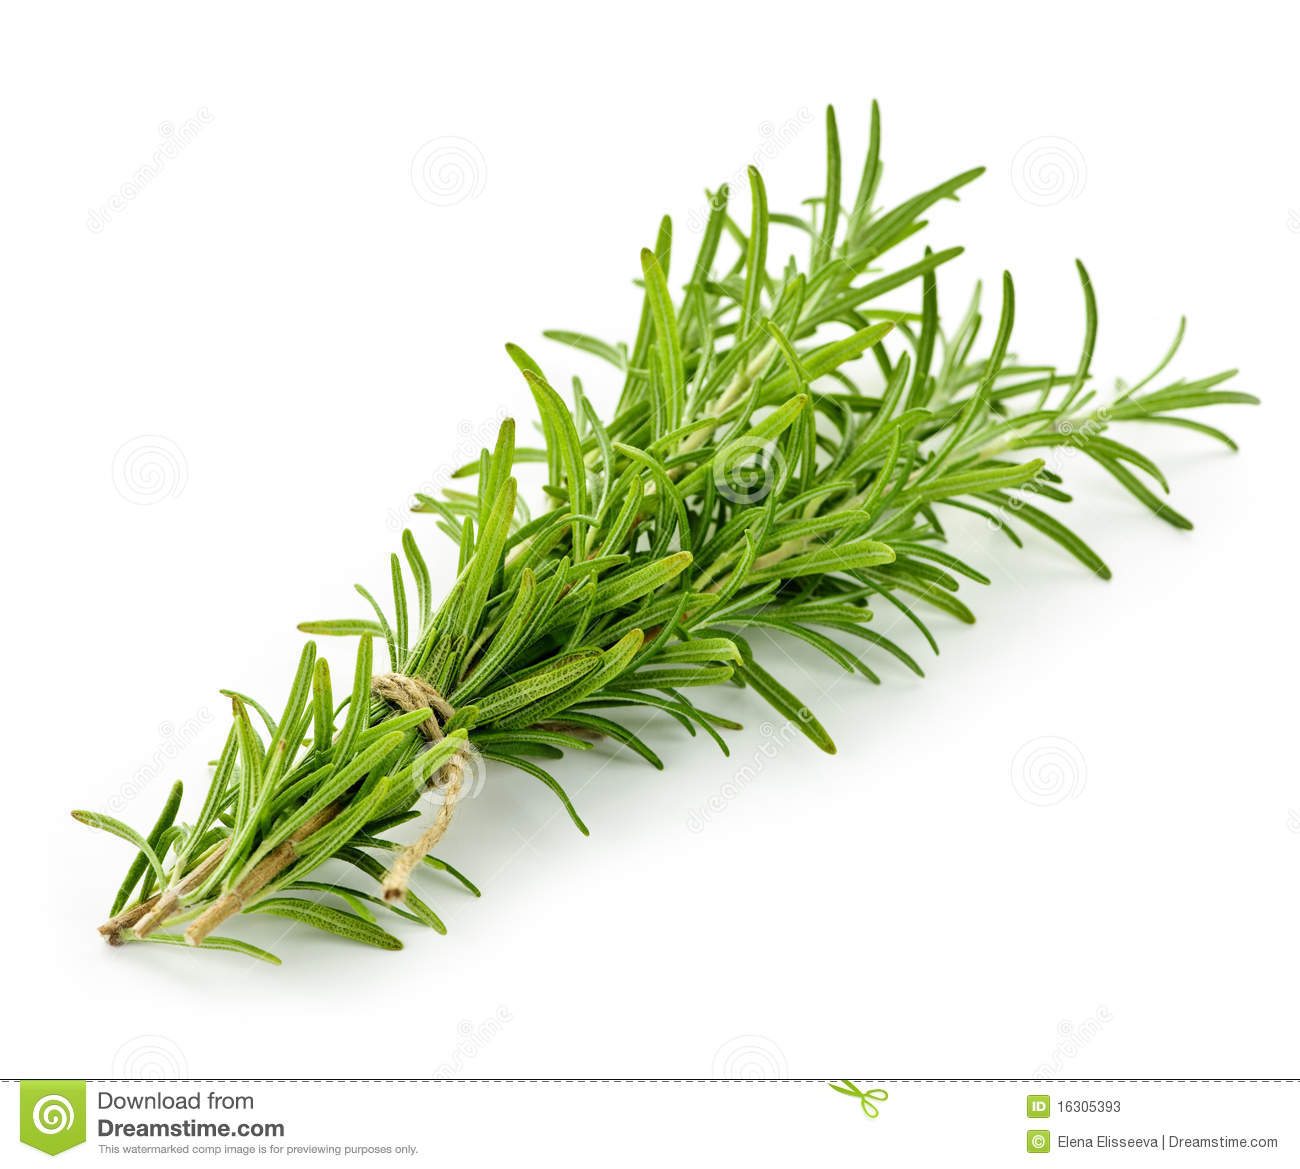 Rosemary sprigs tied in bundle isolated on white background.